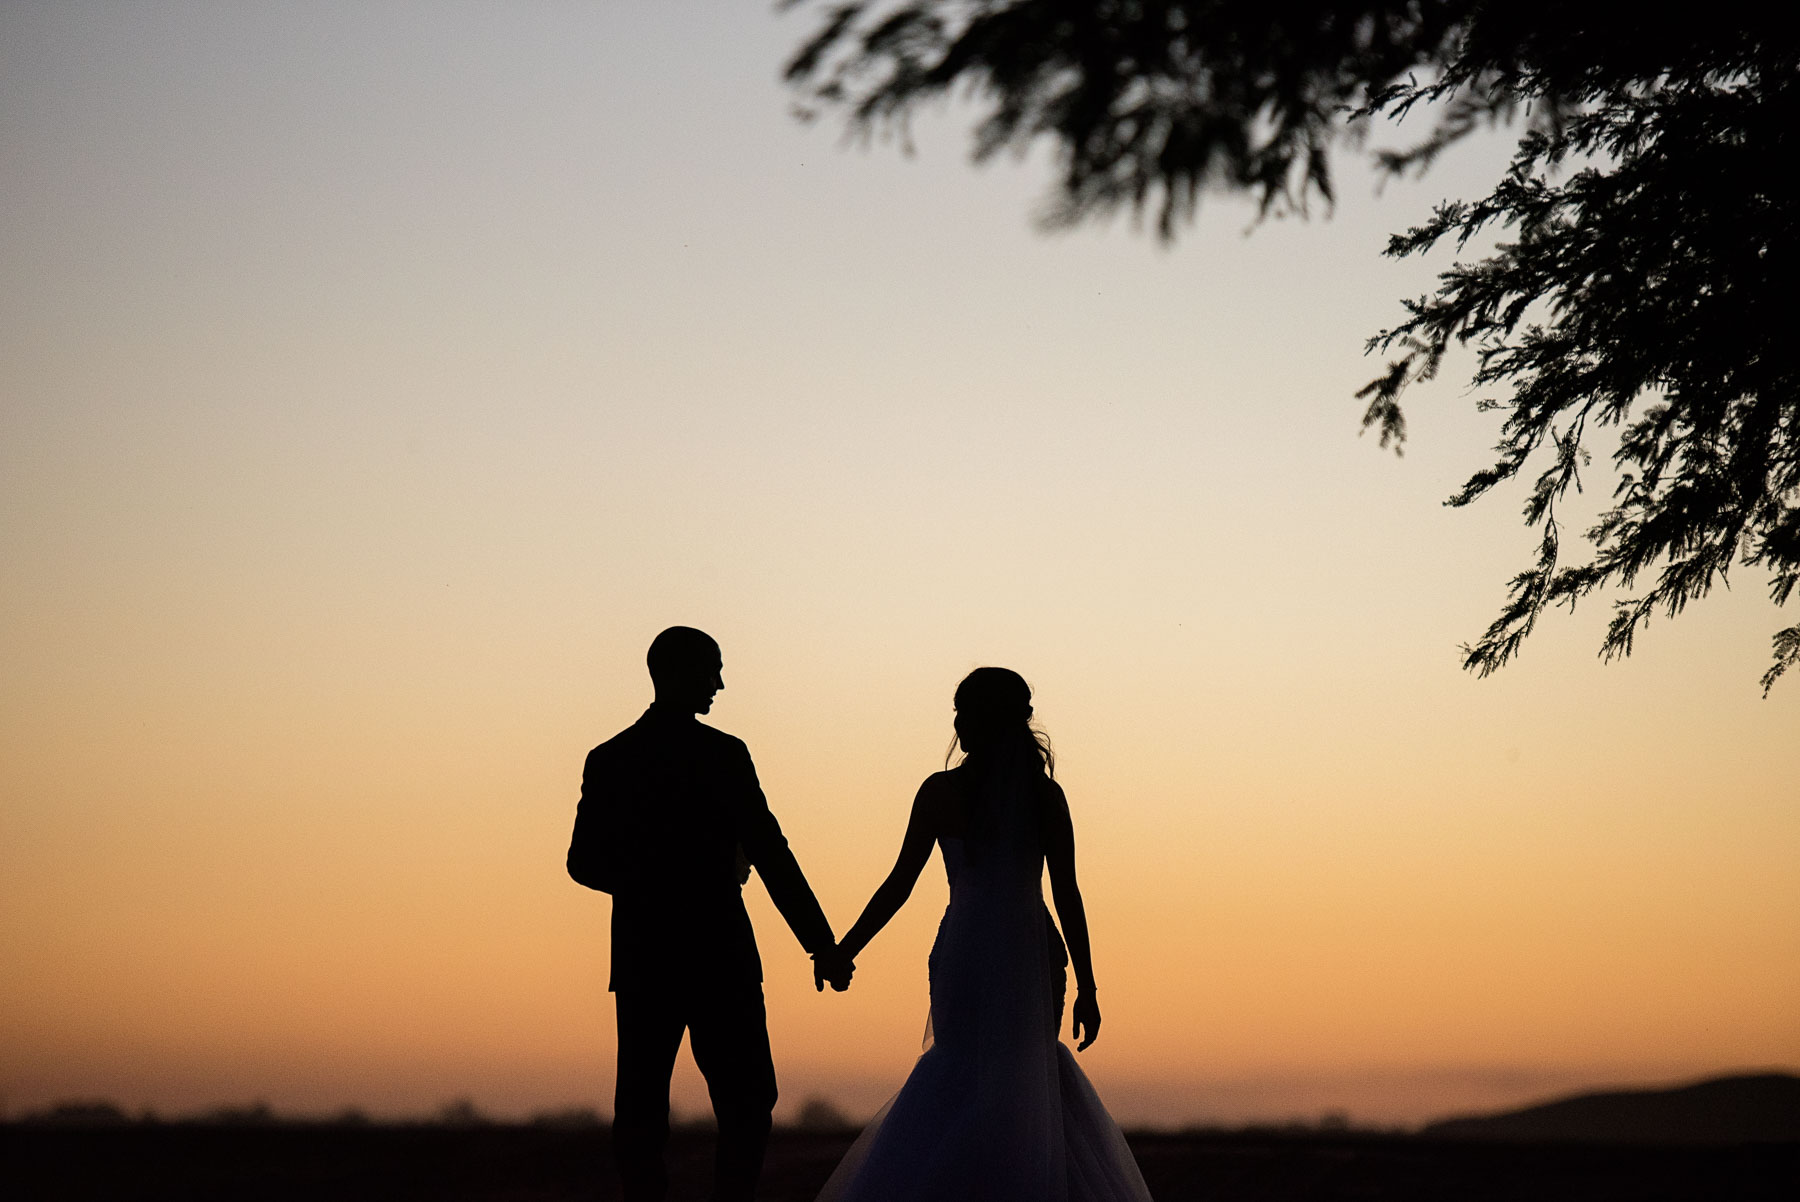 Wedding Photographers, Farm wedding photography, Sunset wedding photos